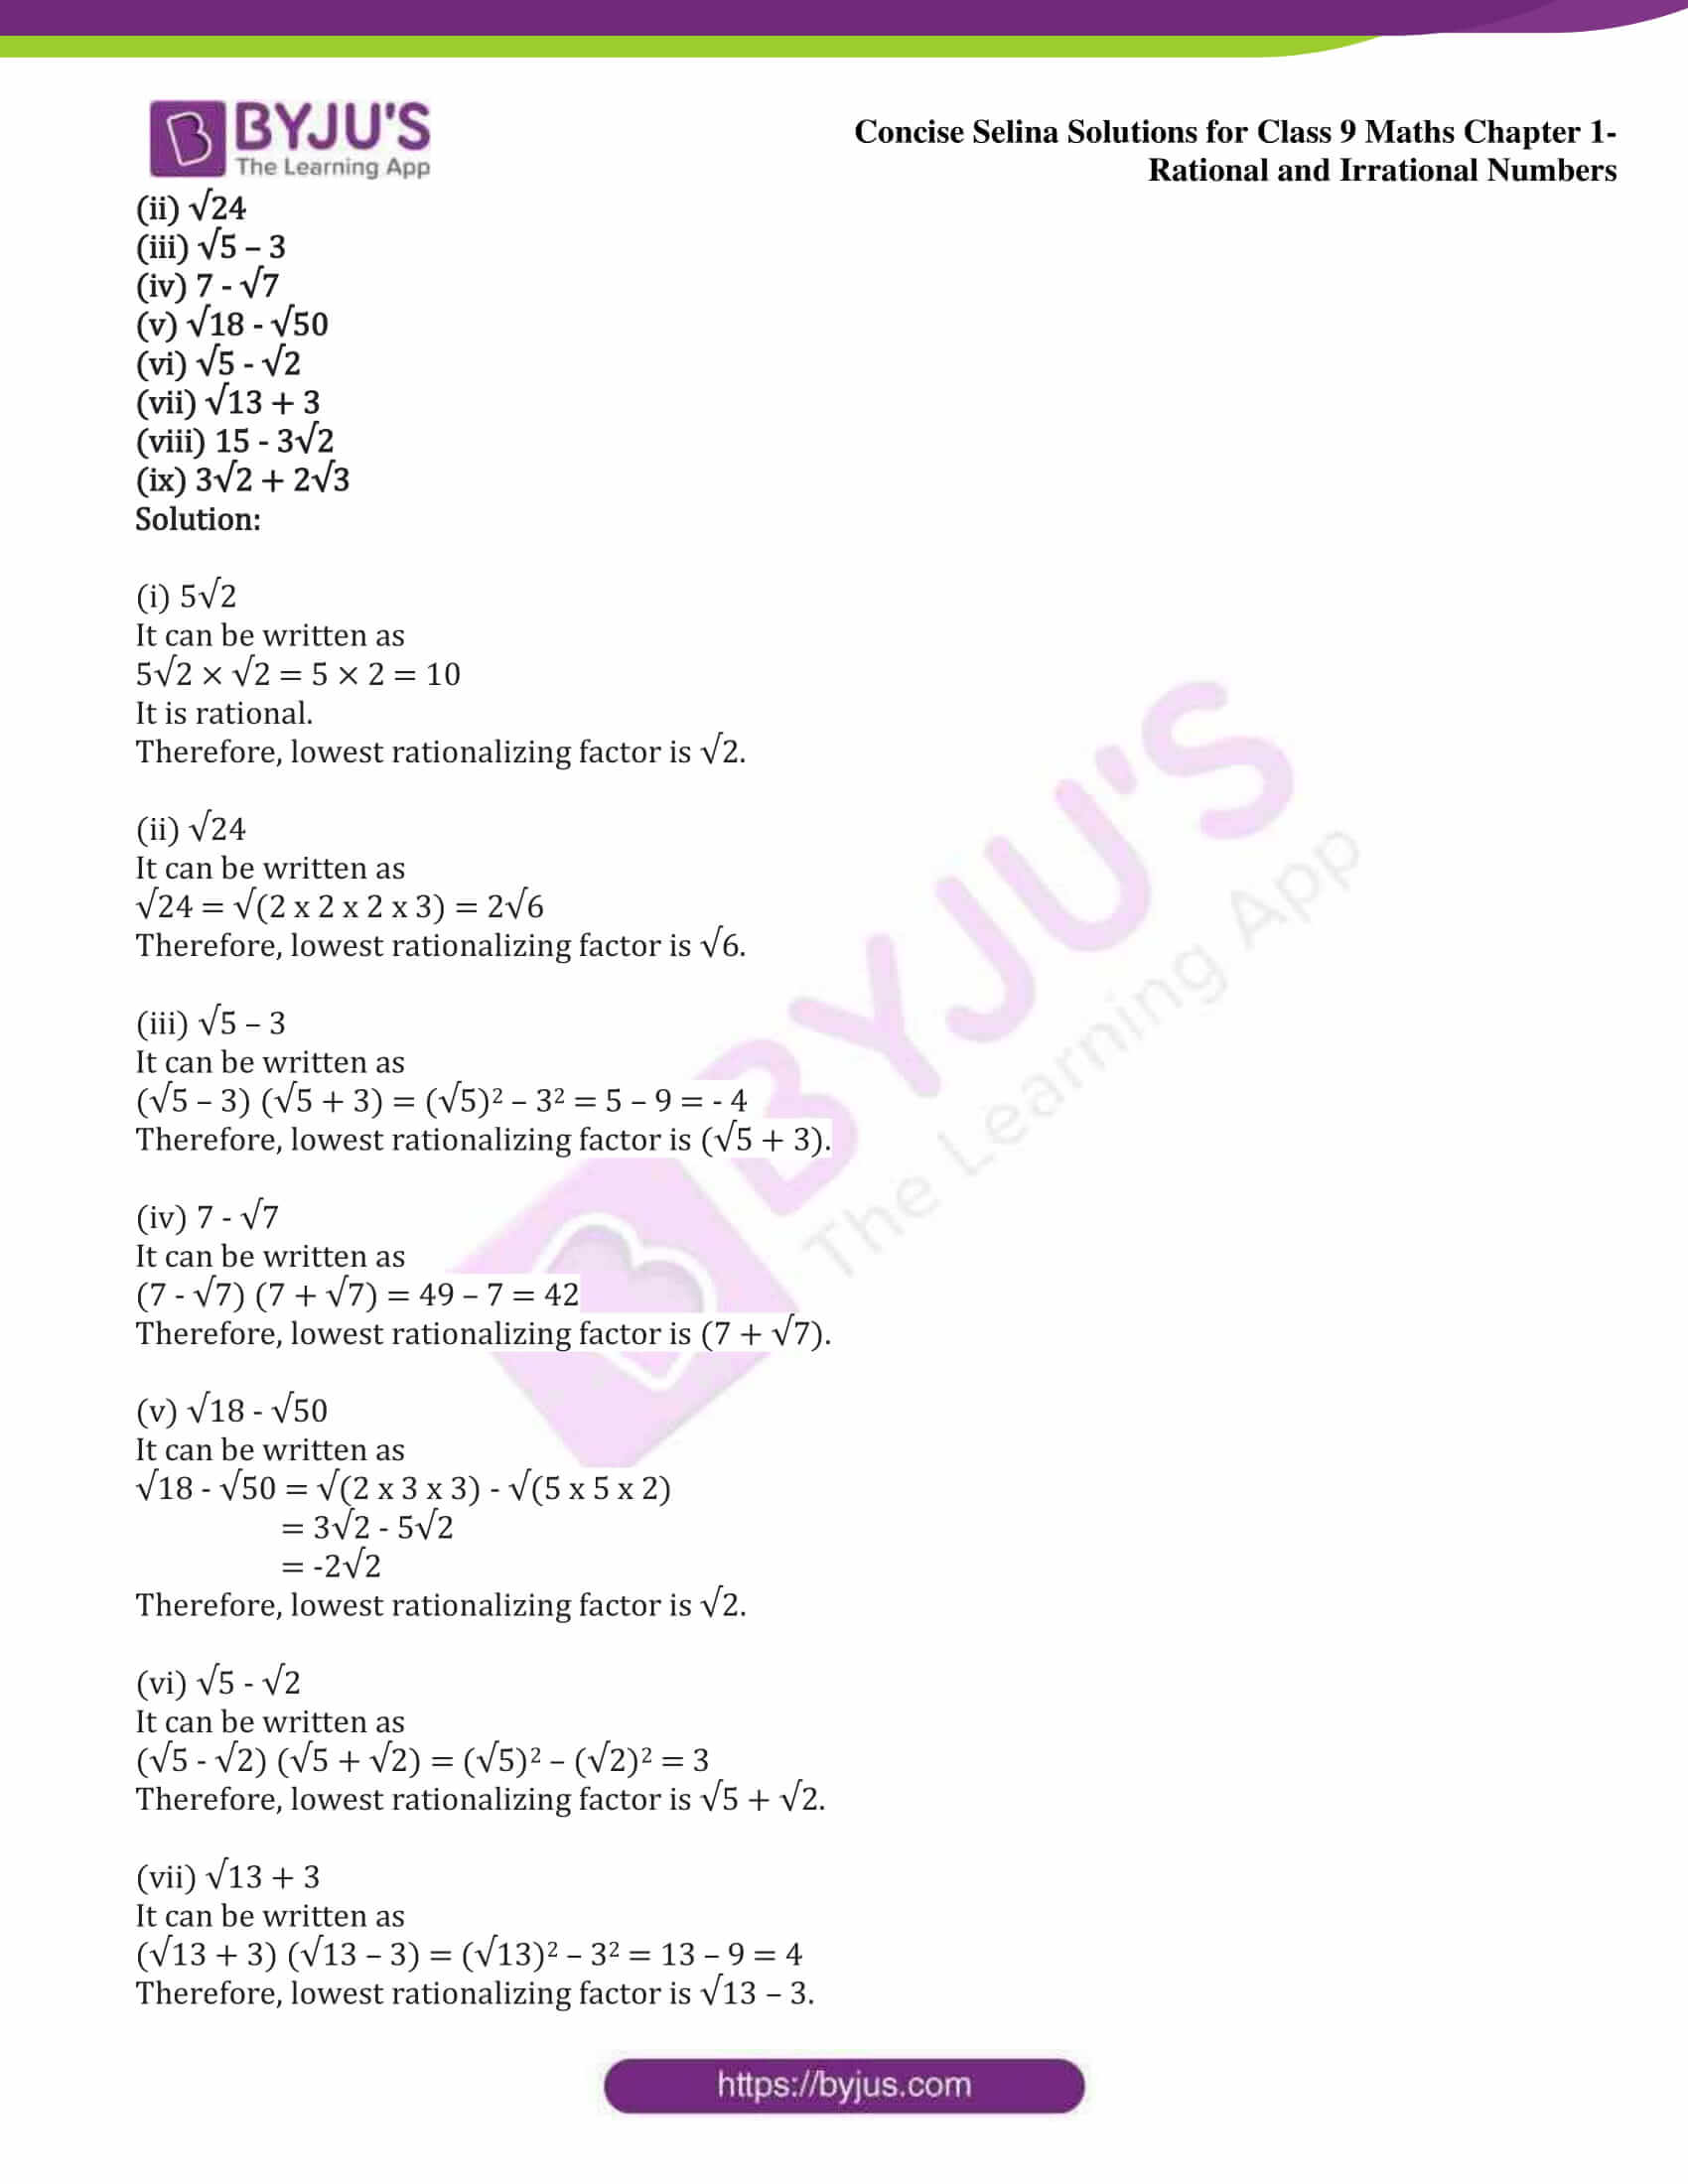 icse class 9 maths may13 selina solutions chapter 1 rational and irrational numbers 16